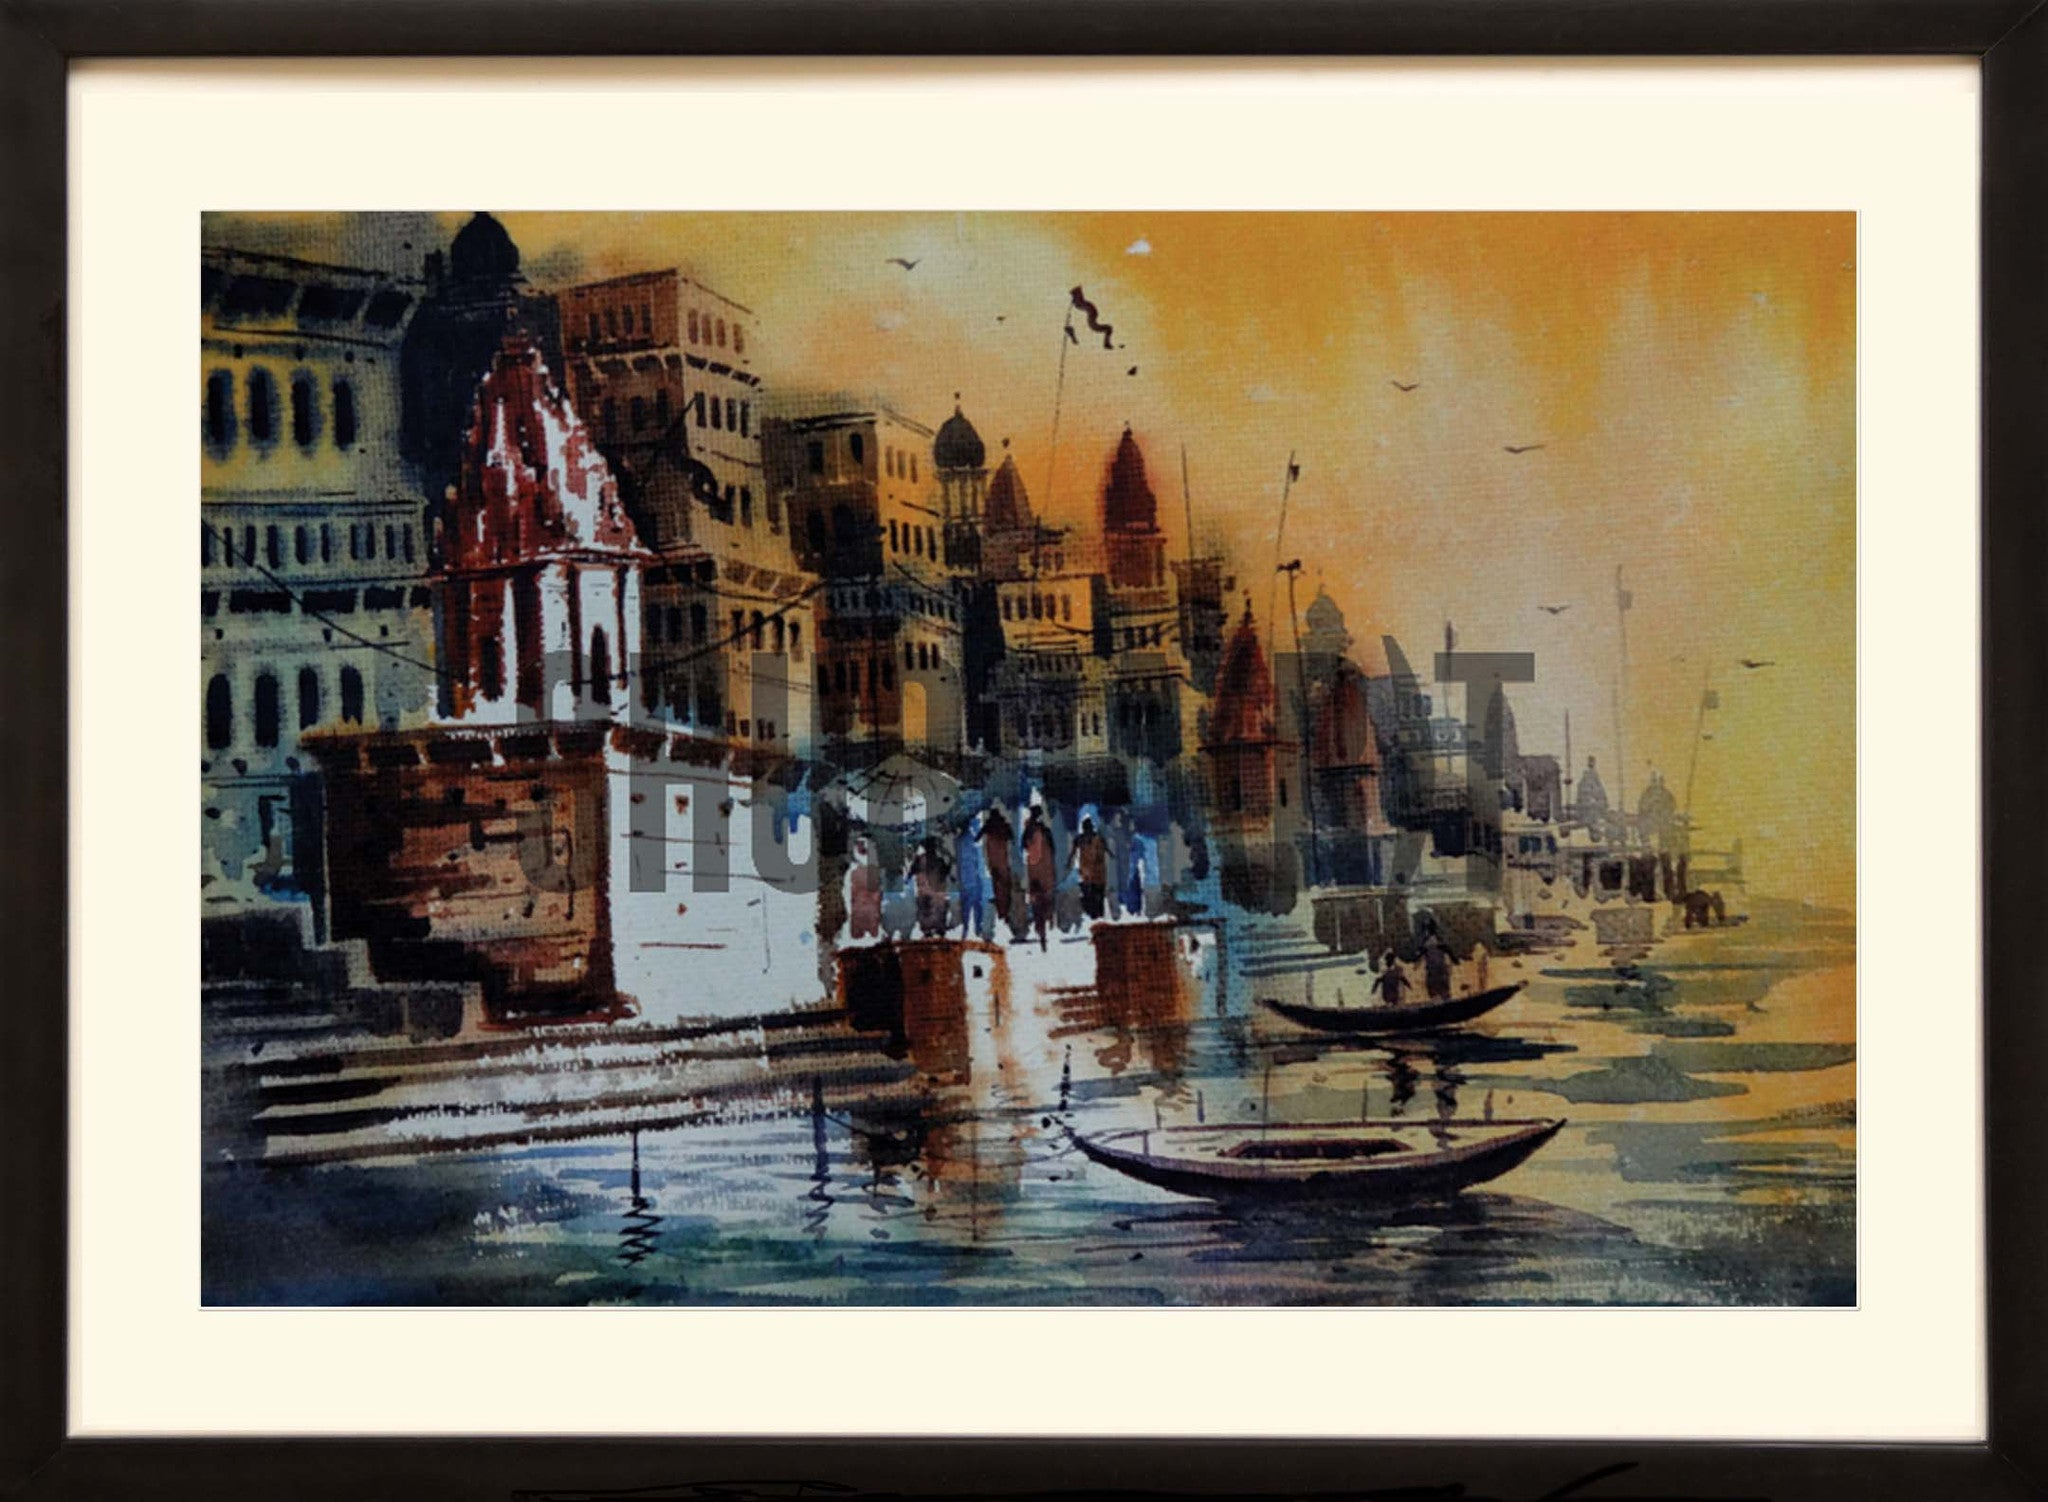 The Mystical Beginning- Subah-e-Banaras